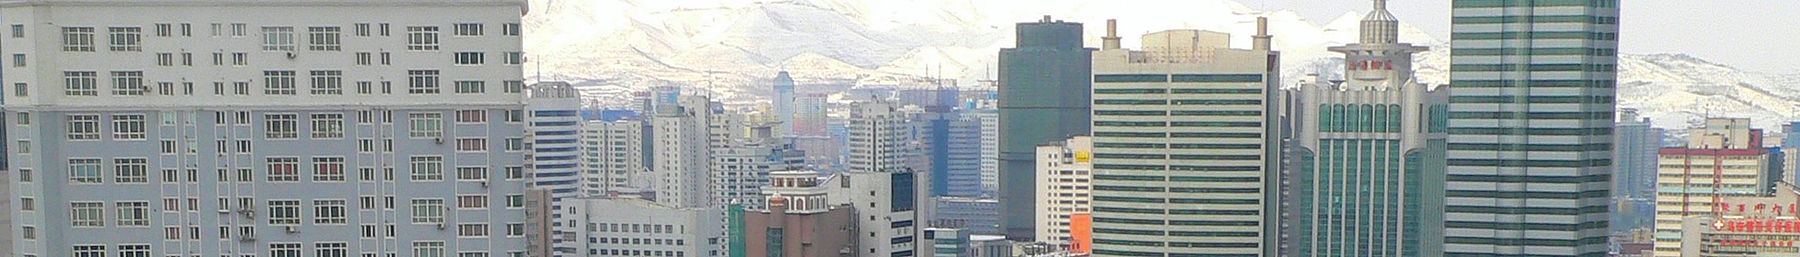 WV banner Urumqi Skyscrapers and mountains.jpg